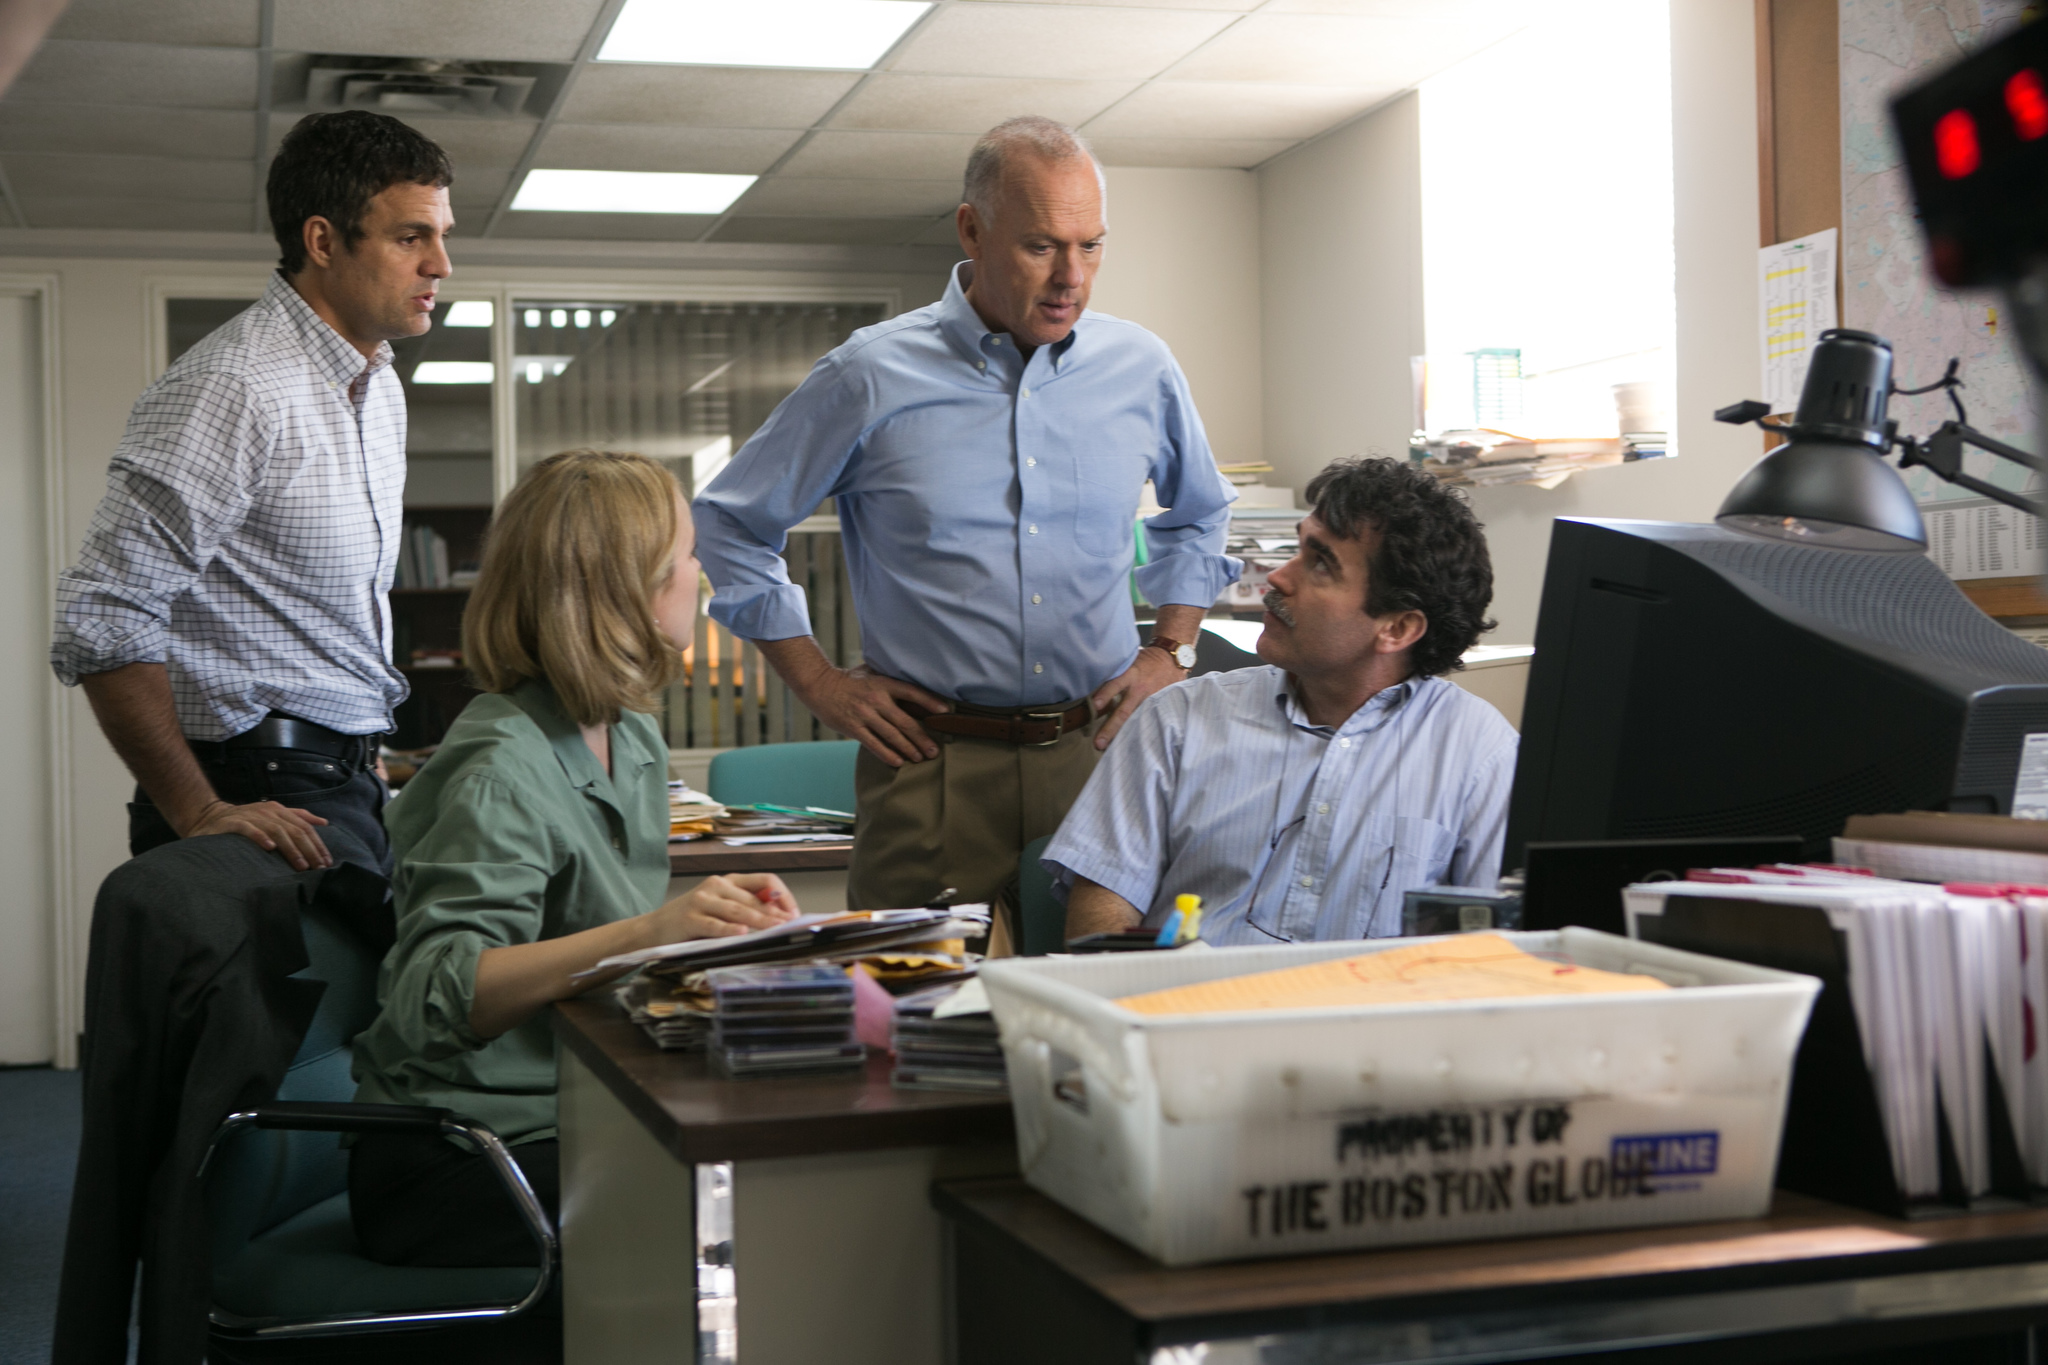 Spotlight, a movie about a newspaper investigation, won the Academy award for Best Picture.